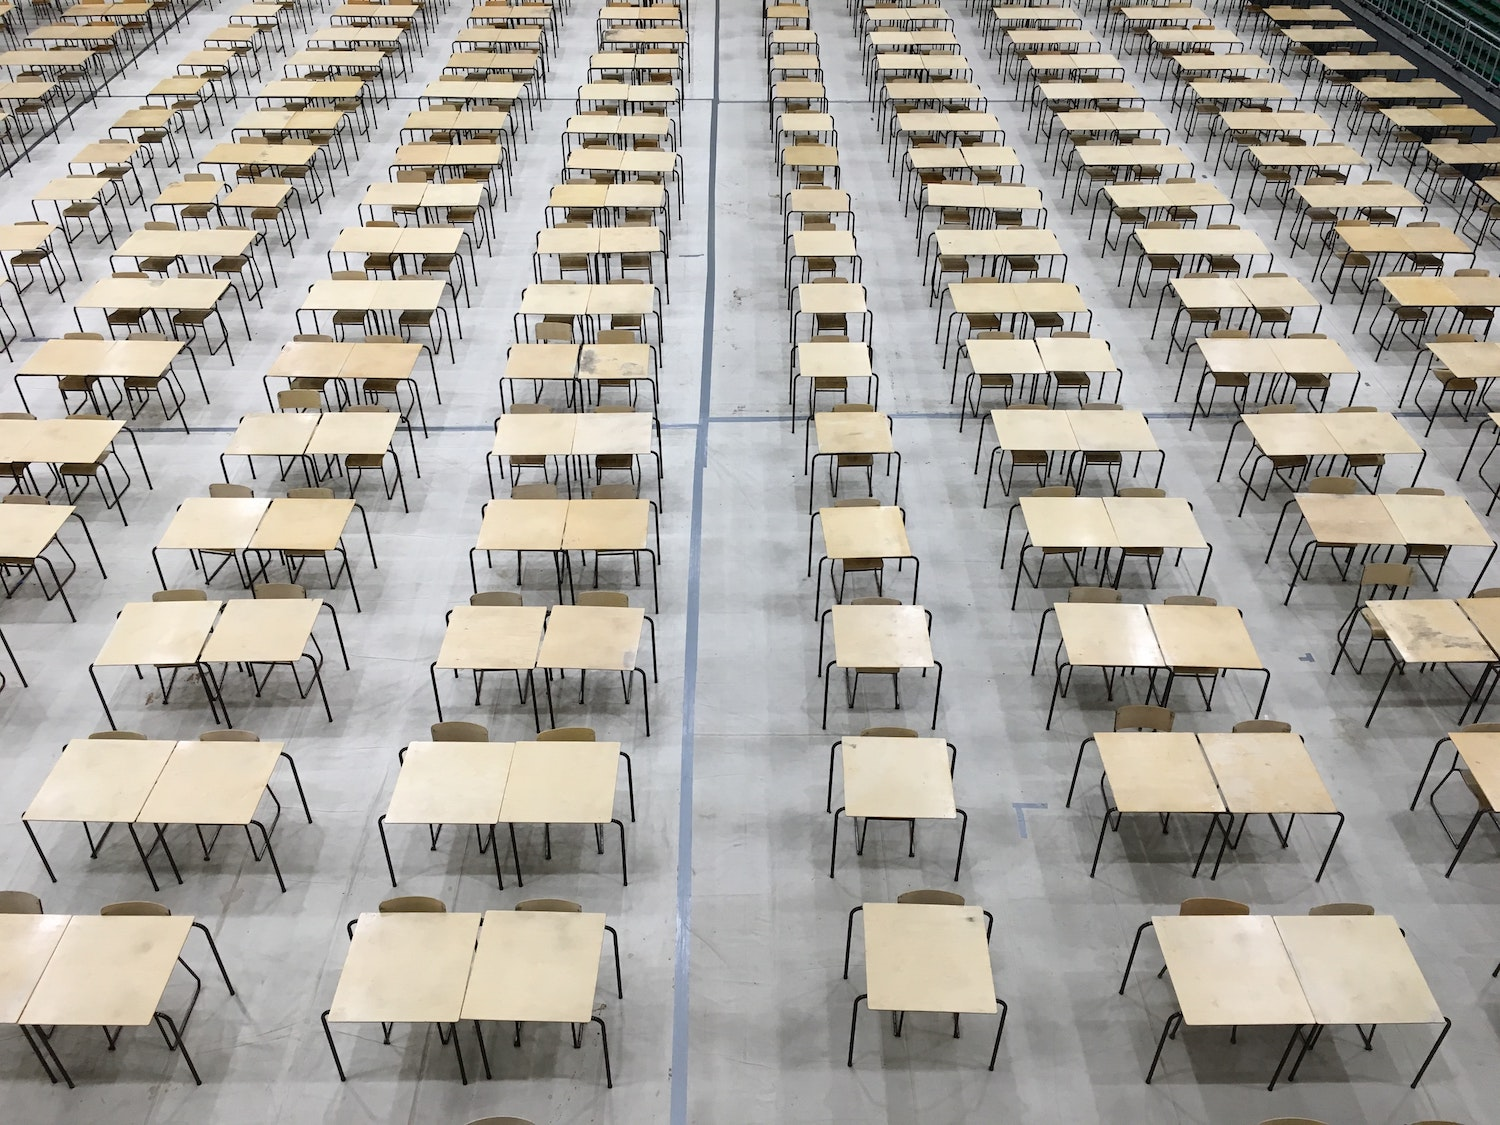 Consultation on A-level and GCSE 2022 exams gets underway